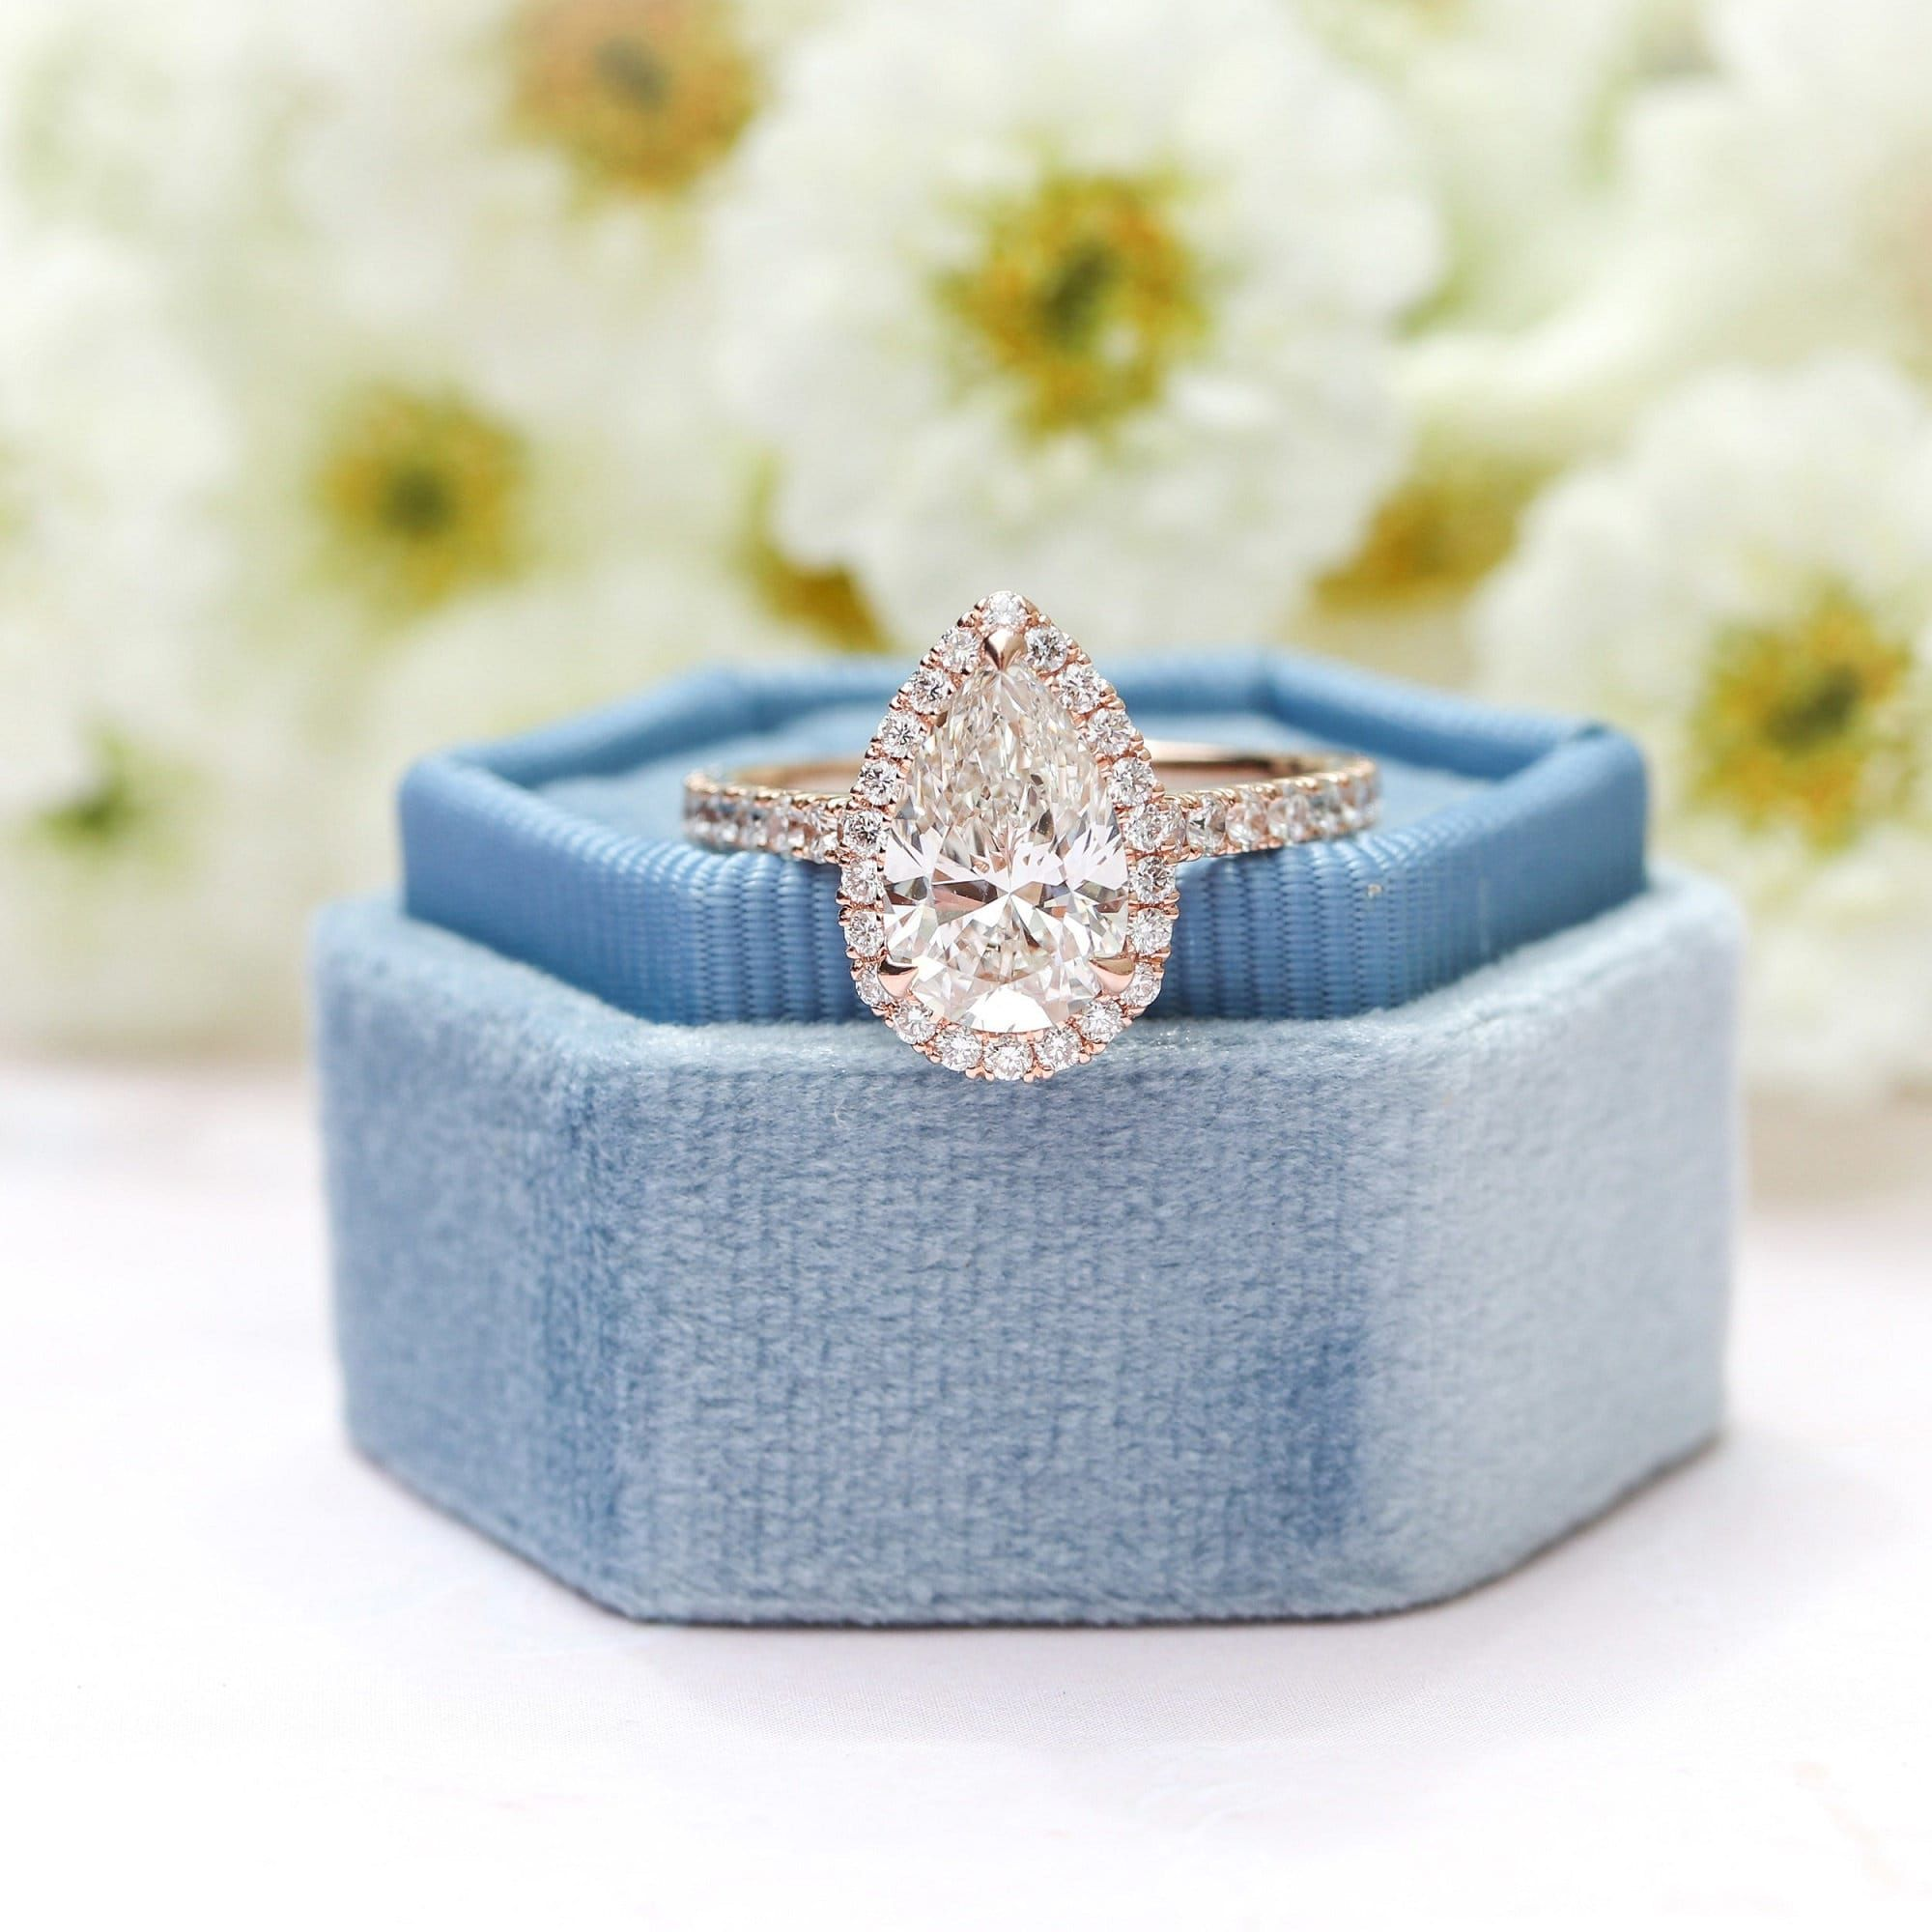 3 Carat Pear Shaped Moissanite Ring/14K Rose Gold Halo Vintage Engagement Ring/Unique Wedding Ring/ Promise Ring